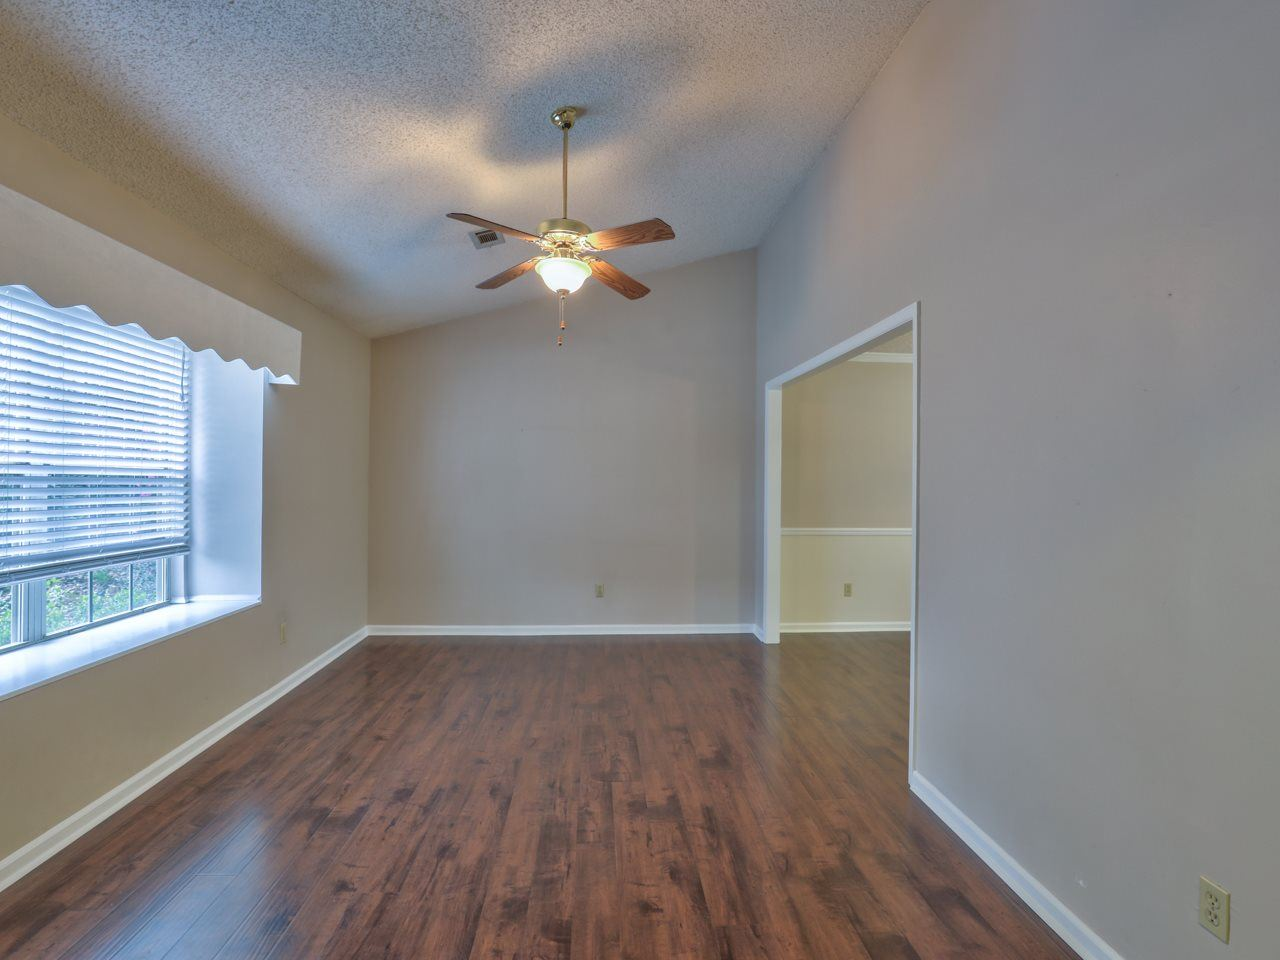 Photo of 288 Astro Court, TALLAHASSEE, FL 32312 (MLS # 315991)